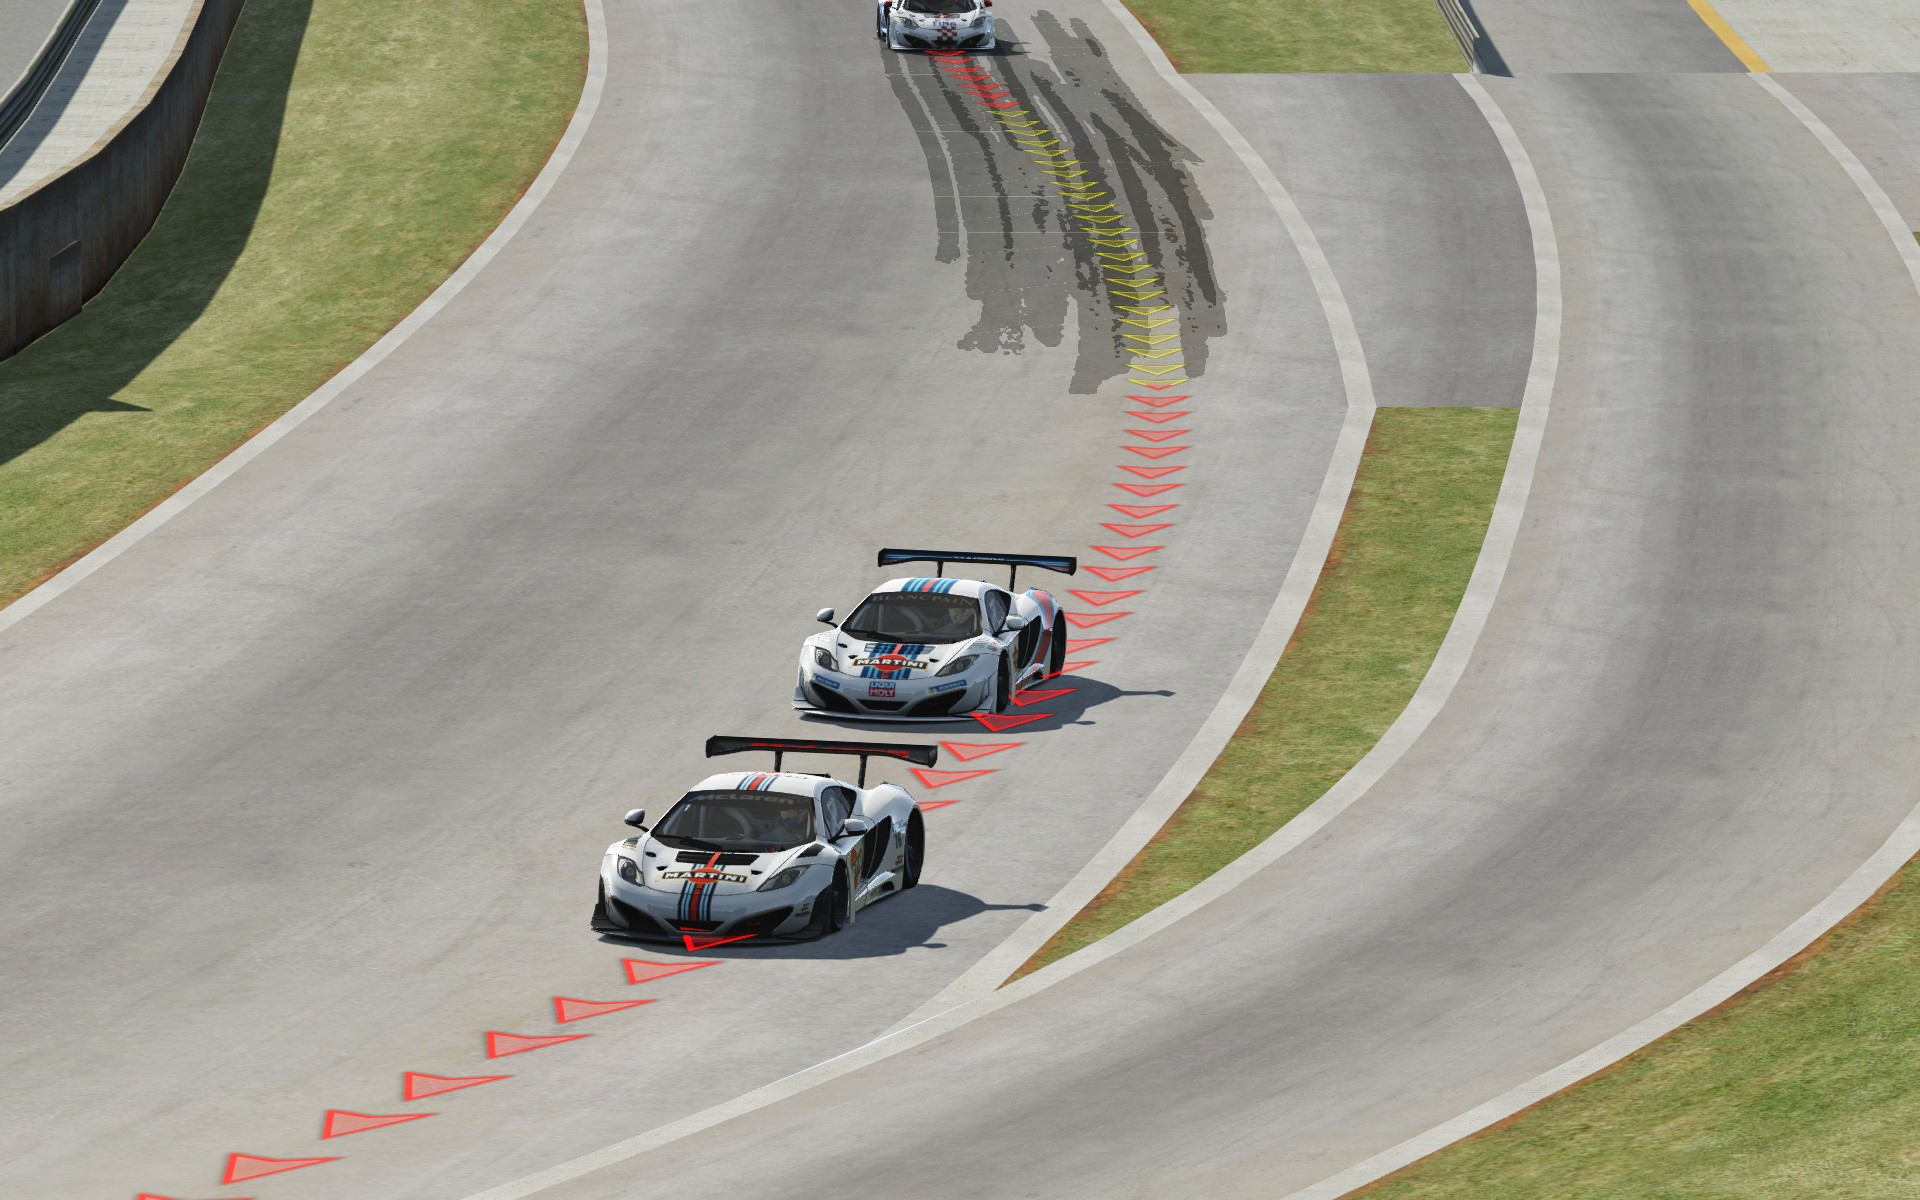 Screenshot_mclaren_mp412c_gt3_road atlanta_10-8-115-13-57-43.jpg